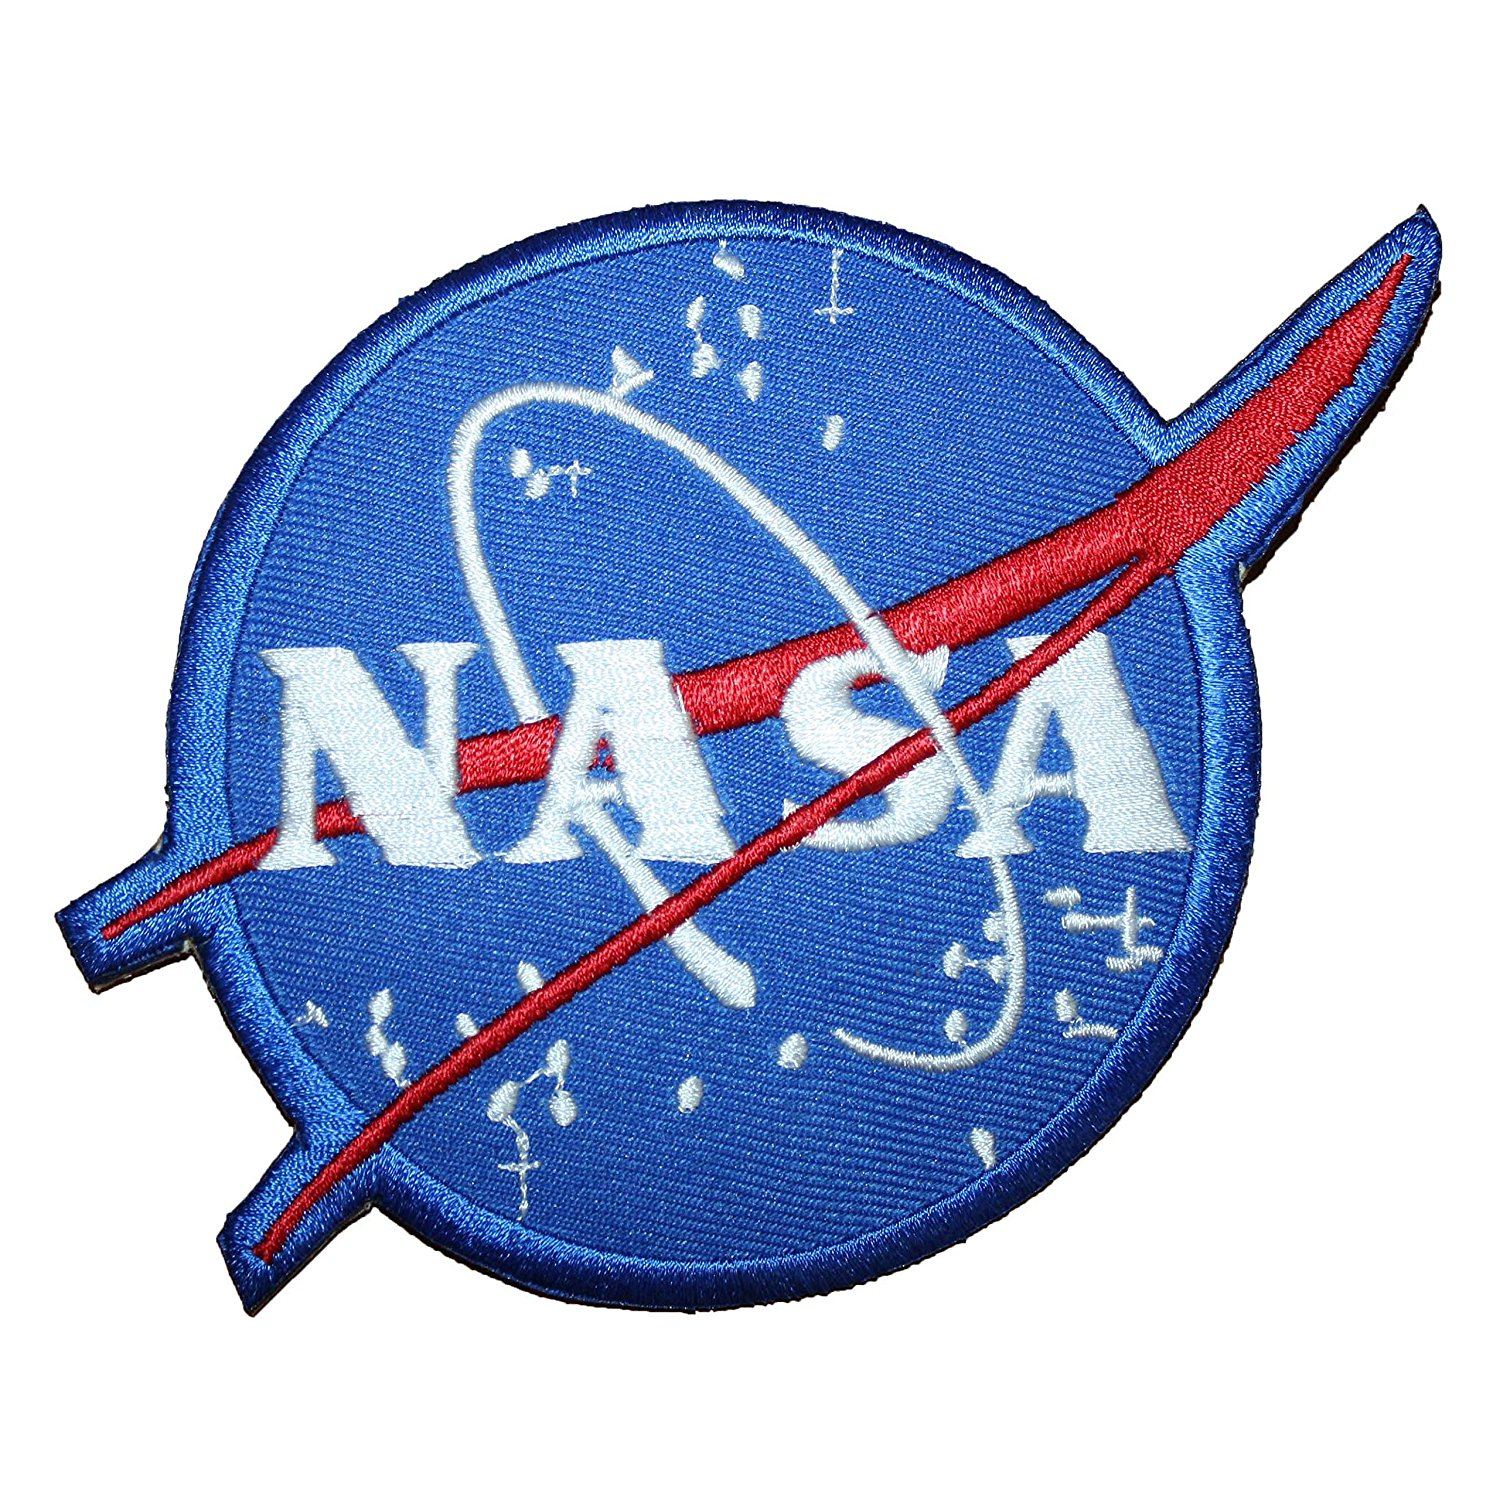 Armageddon NASA Vecto EMBROIDERED PATCH Badge Iron-on, Sew On 5""